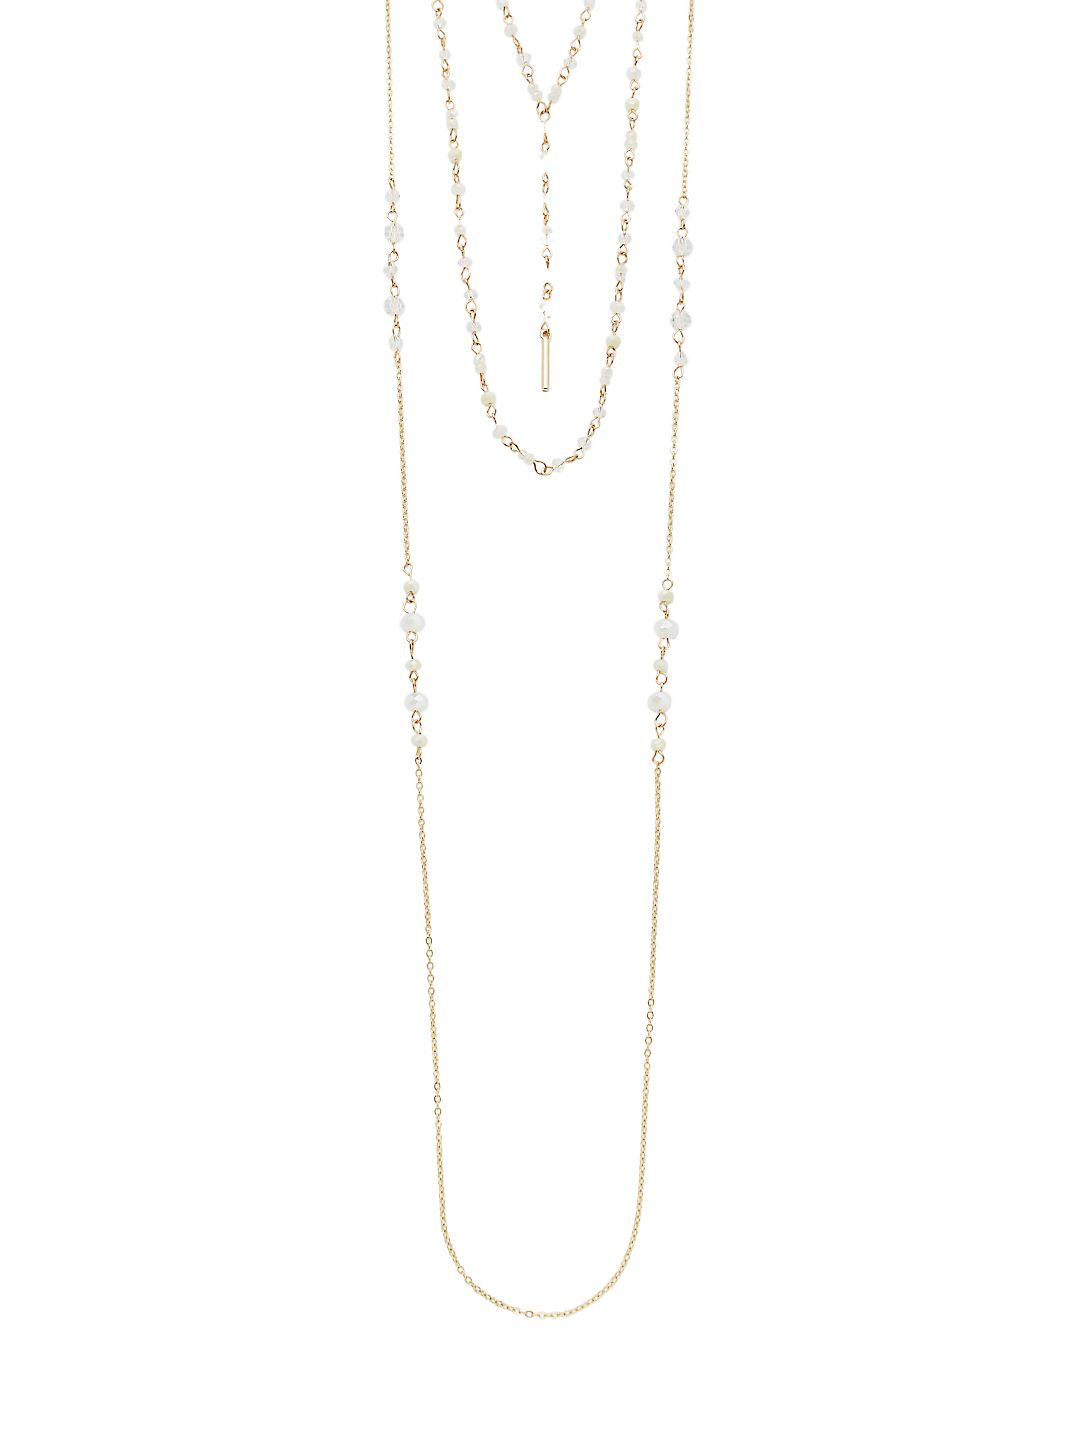 Goldtone Beaded Layered Necklace